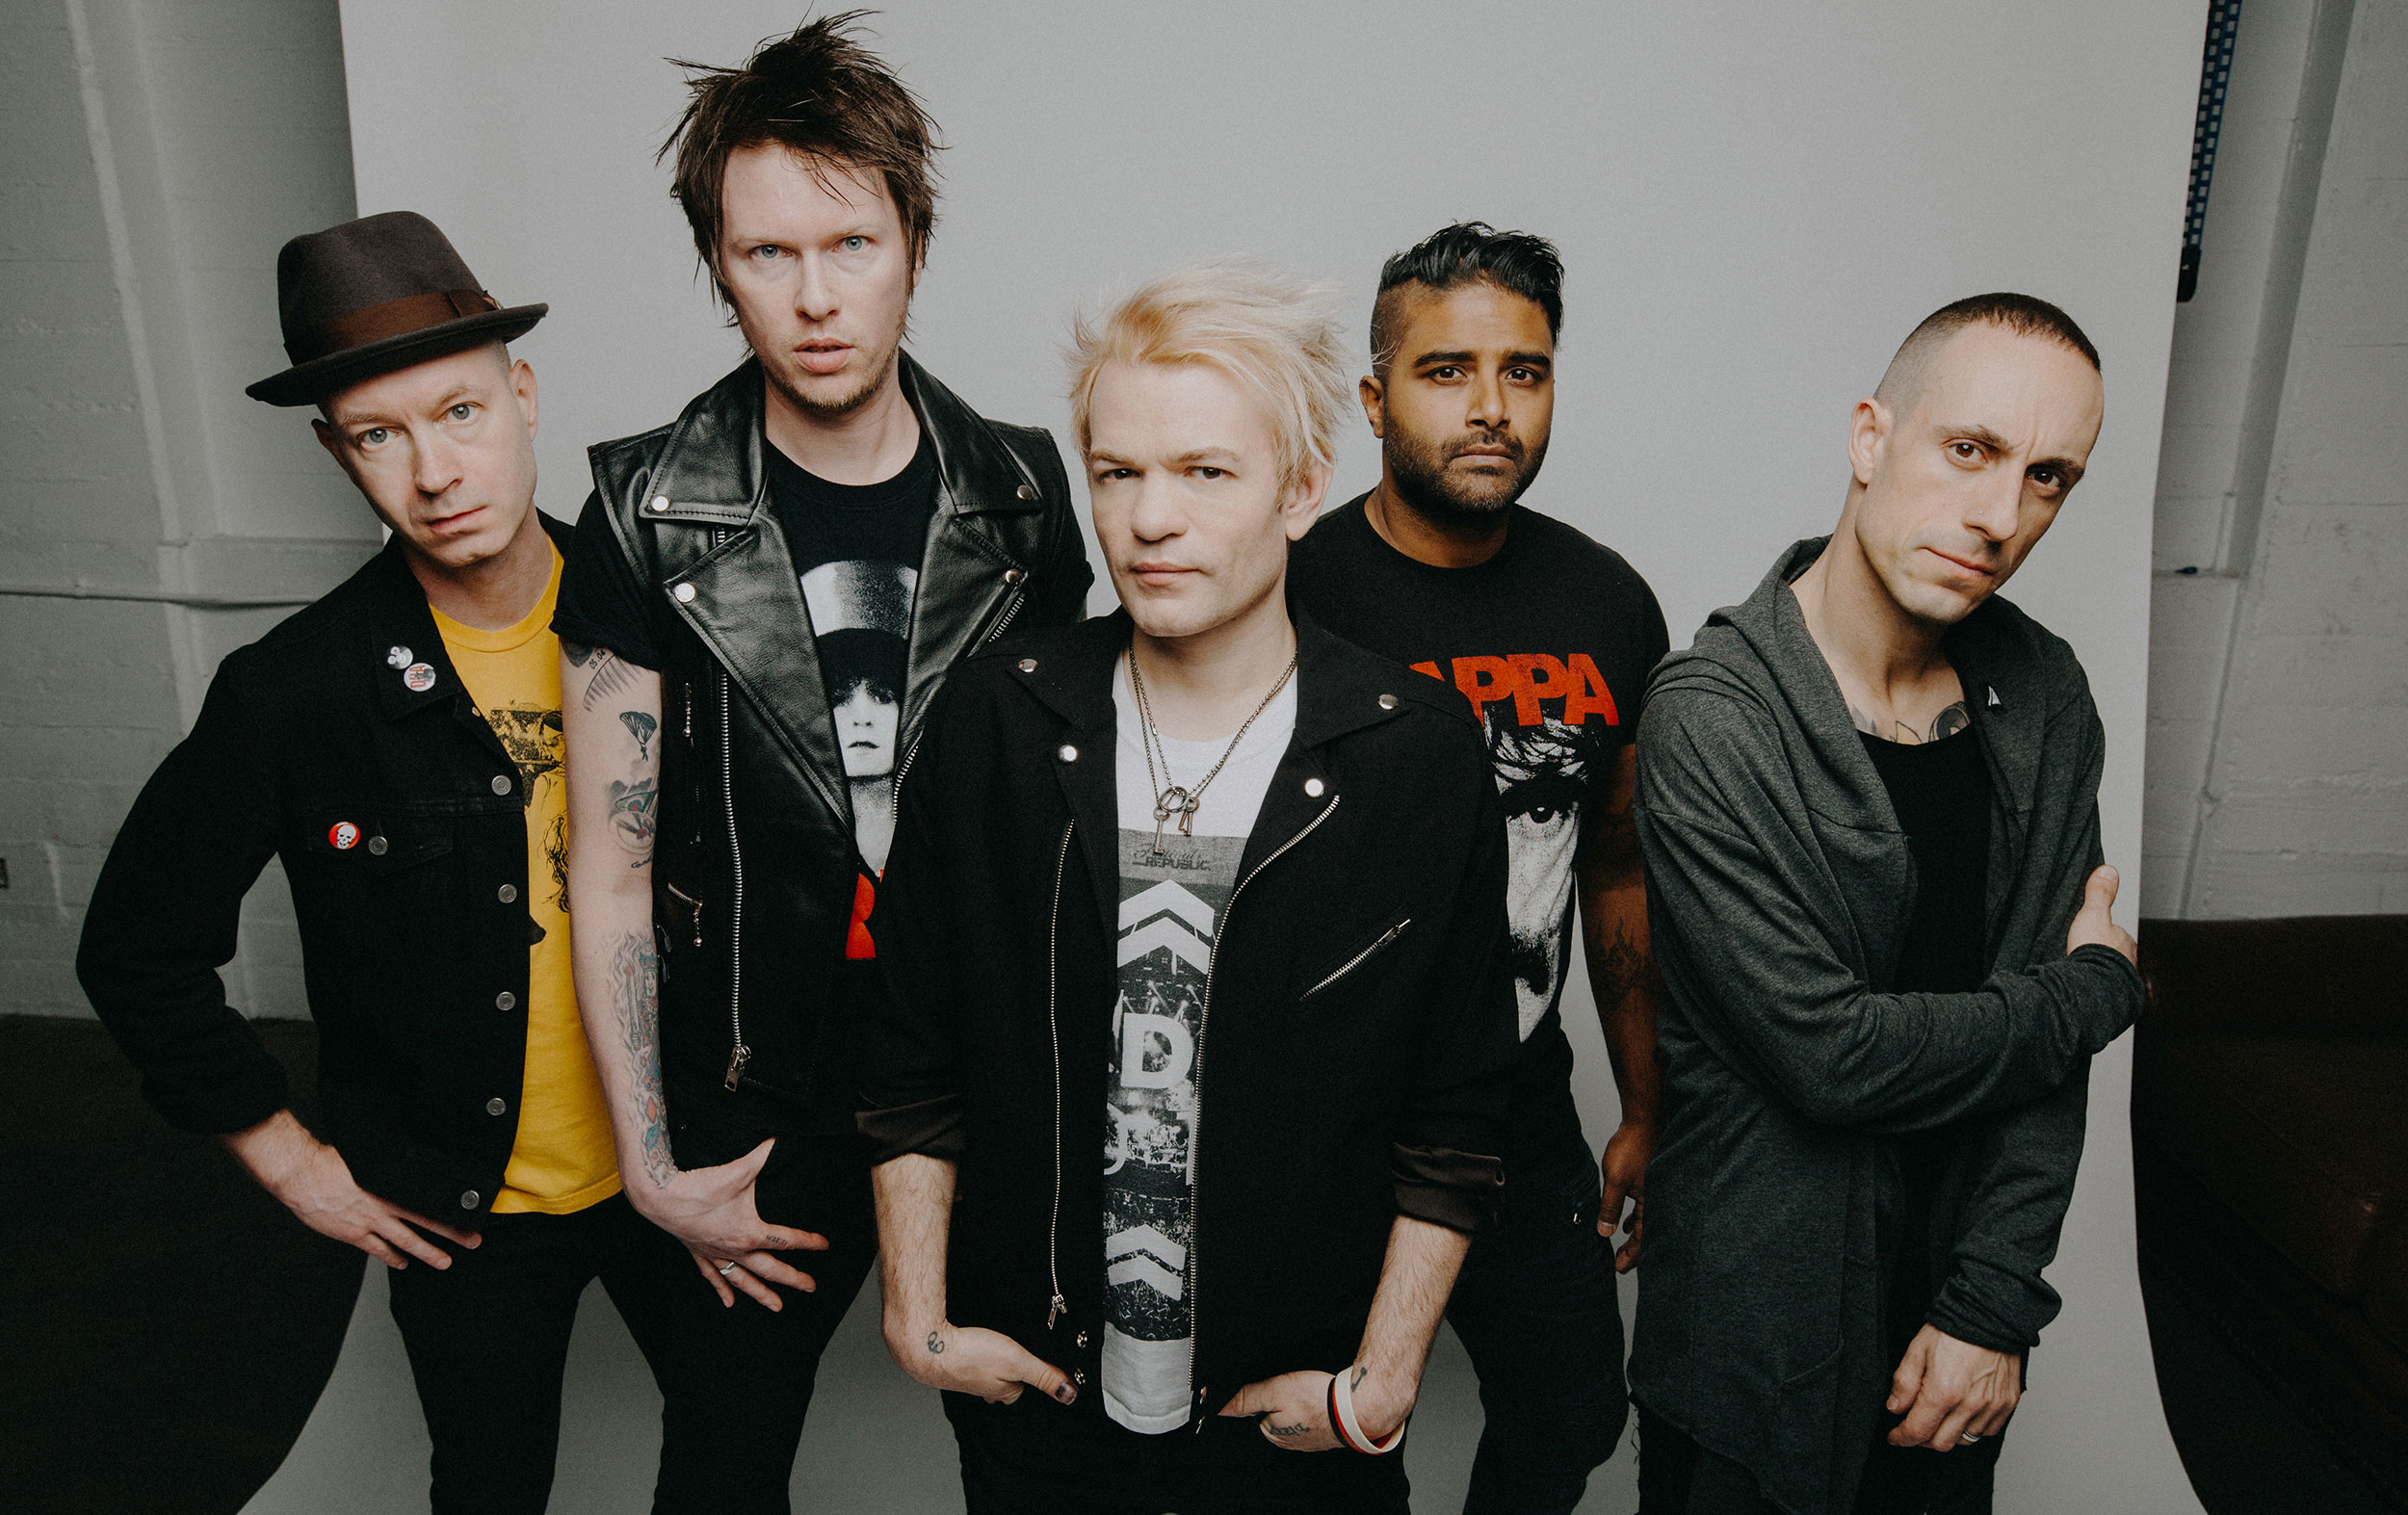 Bad Modern Rock Bands Sum 41 Order In Decline Review The Album Presents A Band In